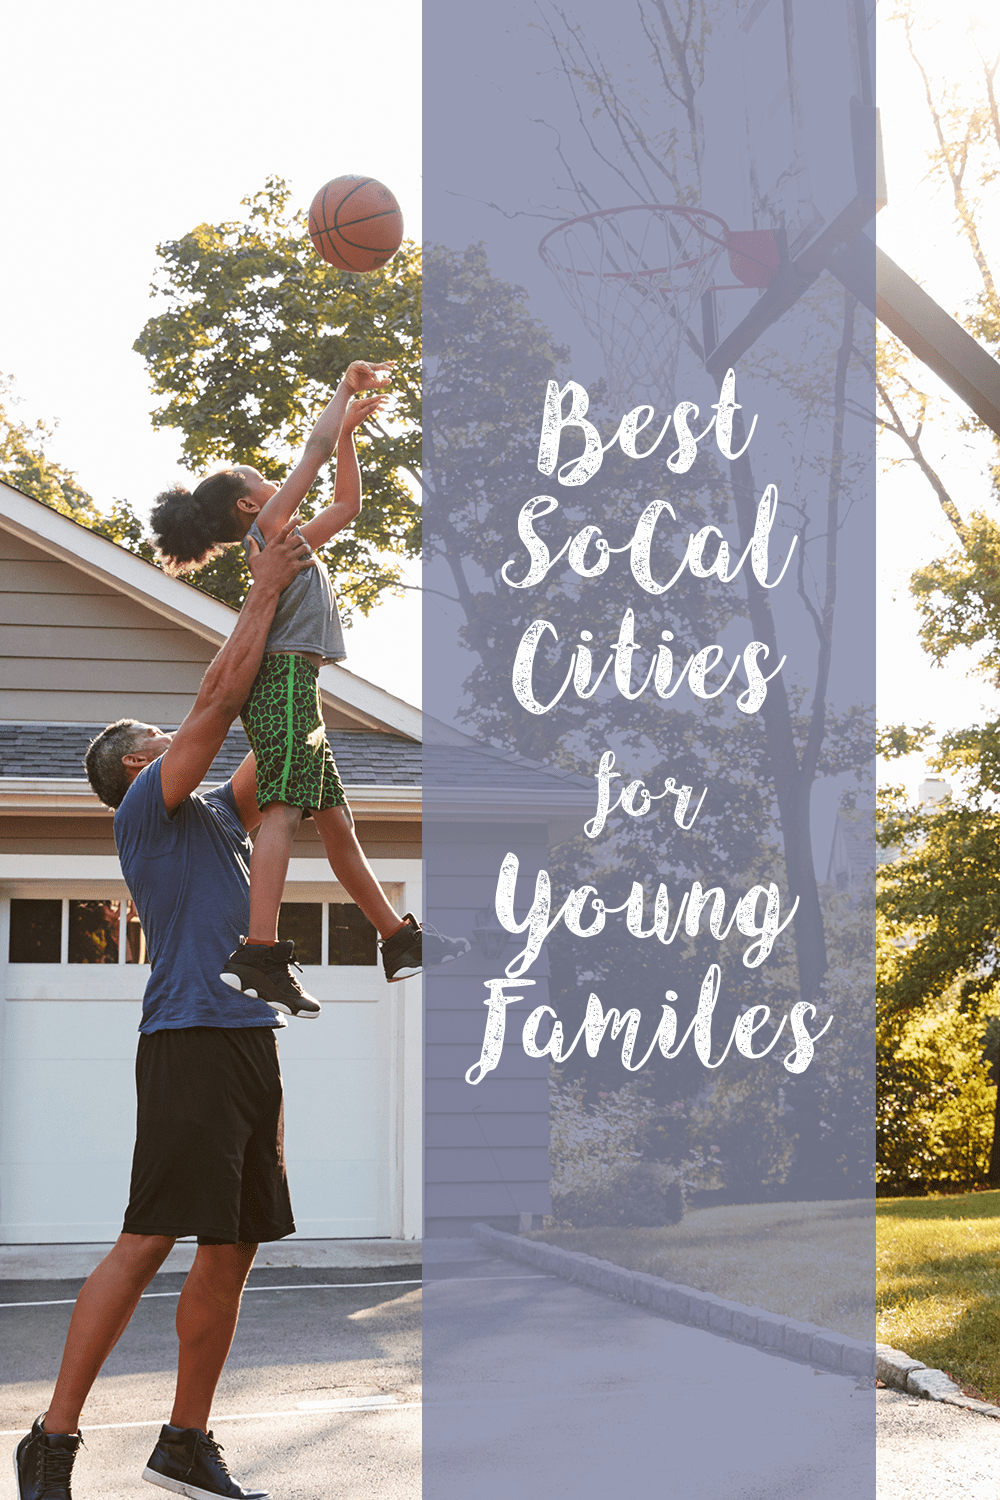 Best Southern California Cities for Young Families